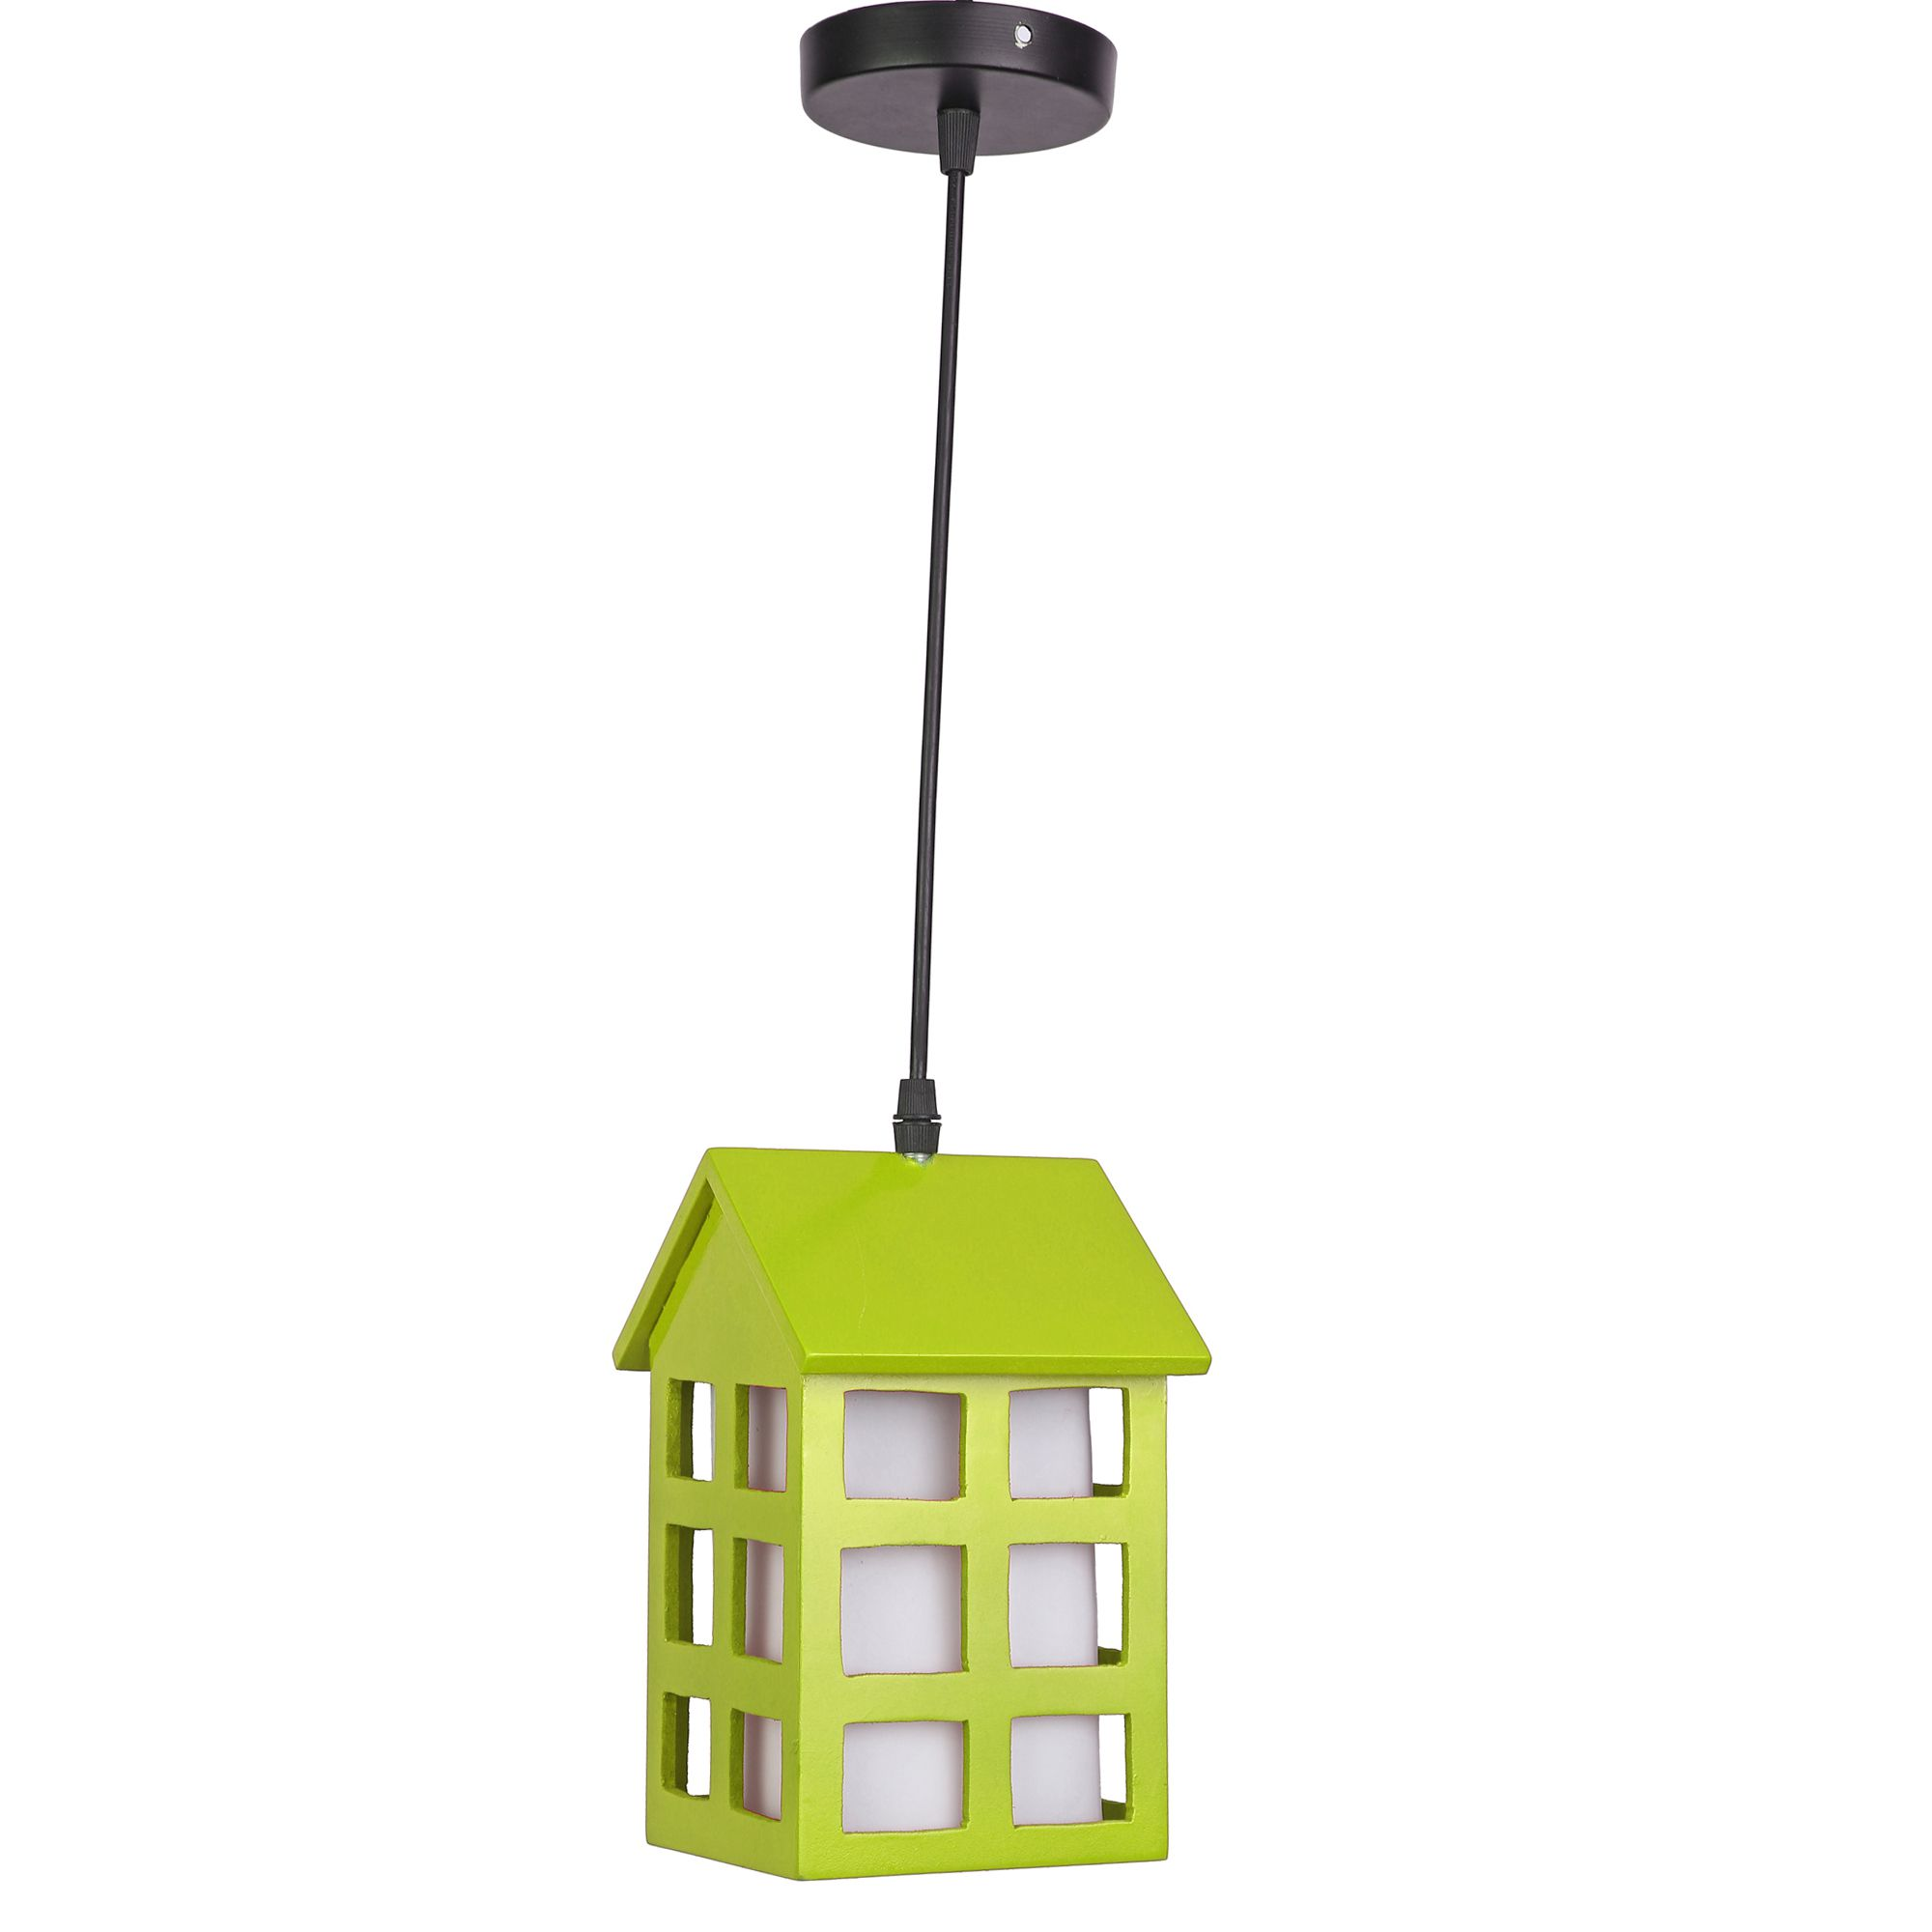 AFAST Glass Exclusive Hanging Light Pendant Green - Pack of 1